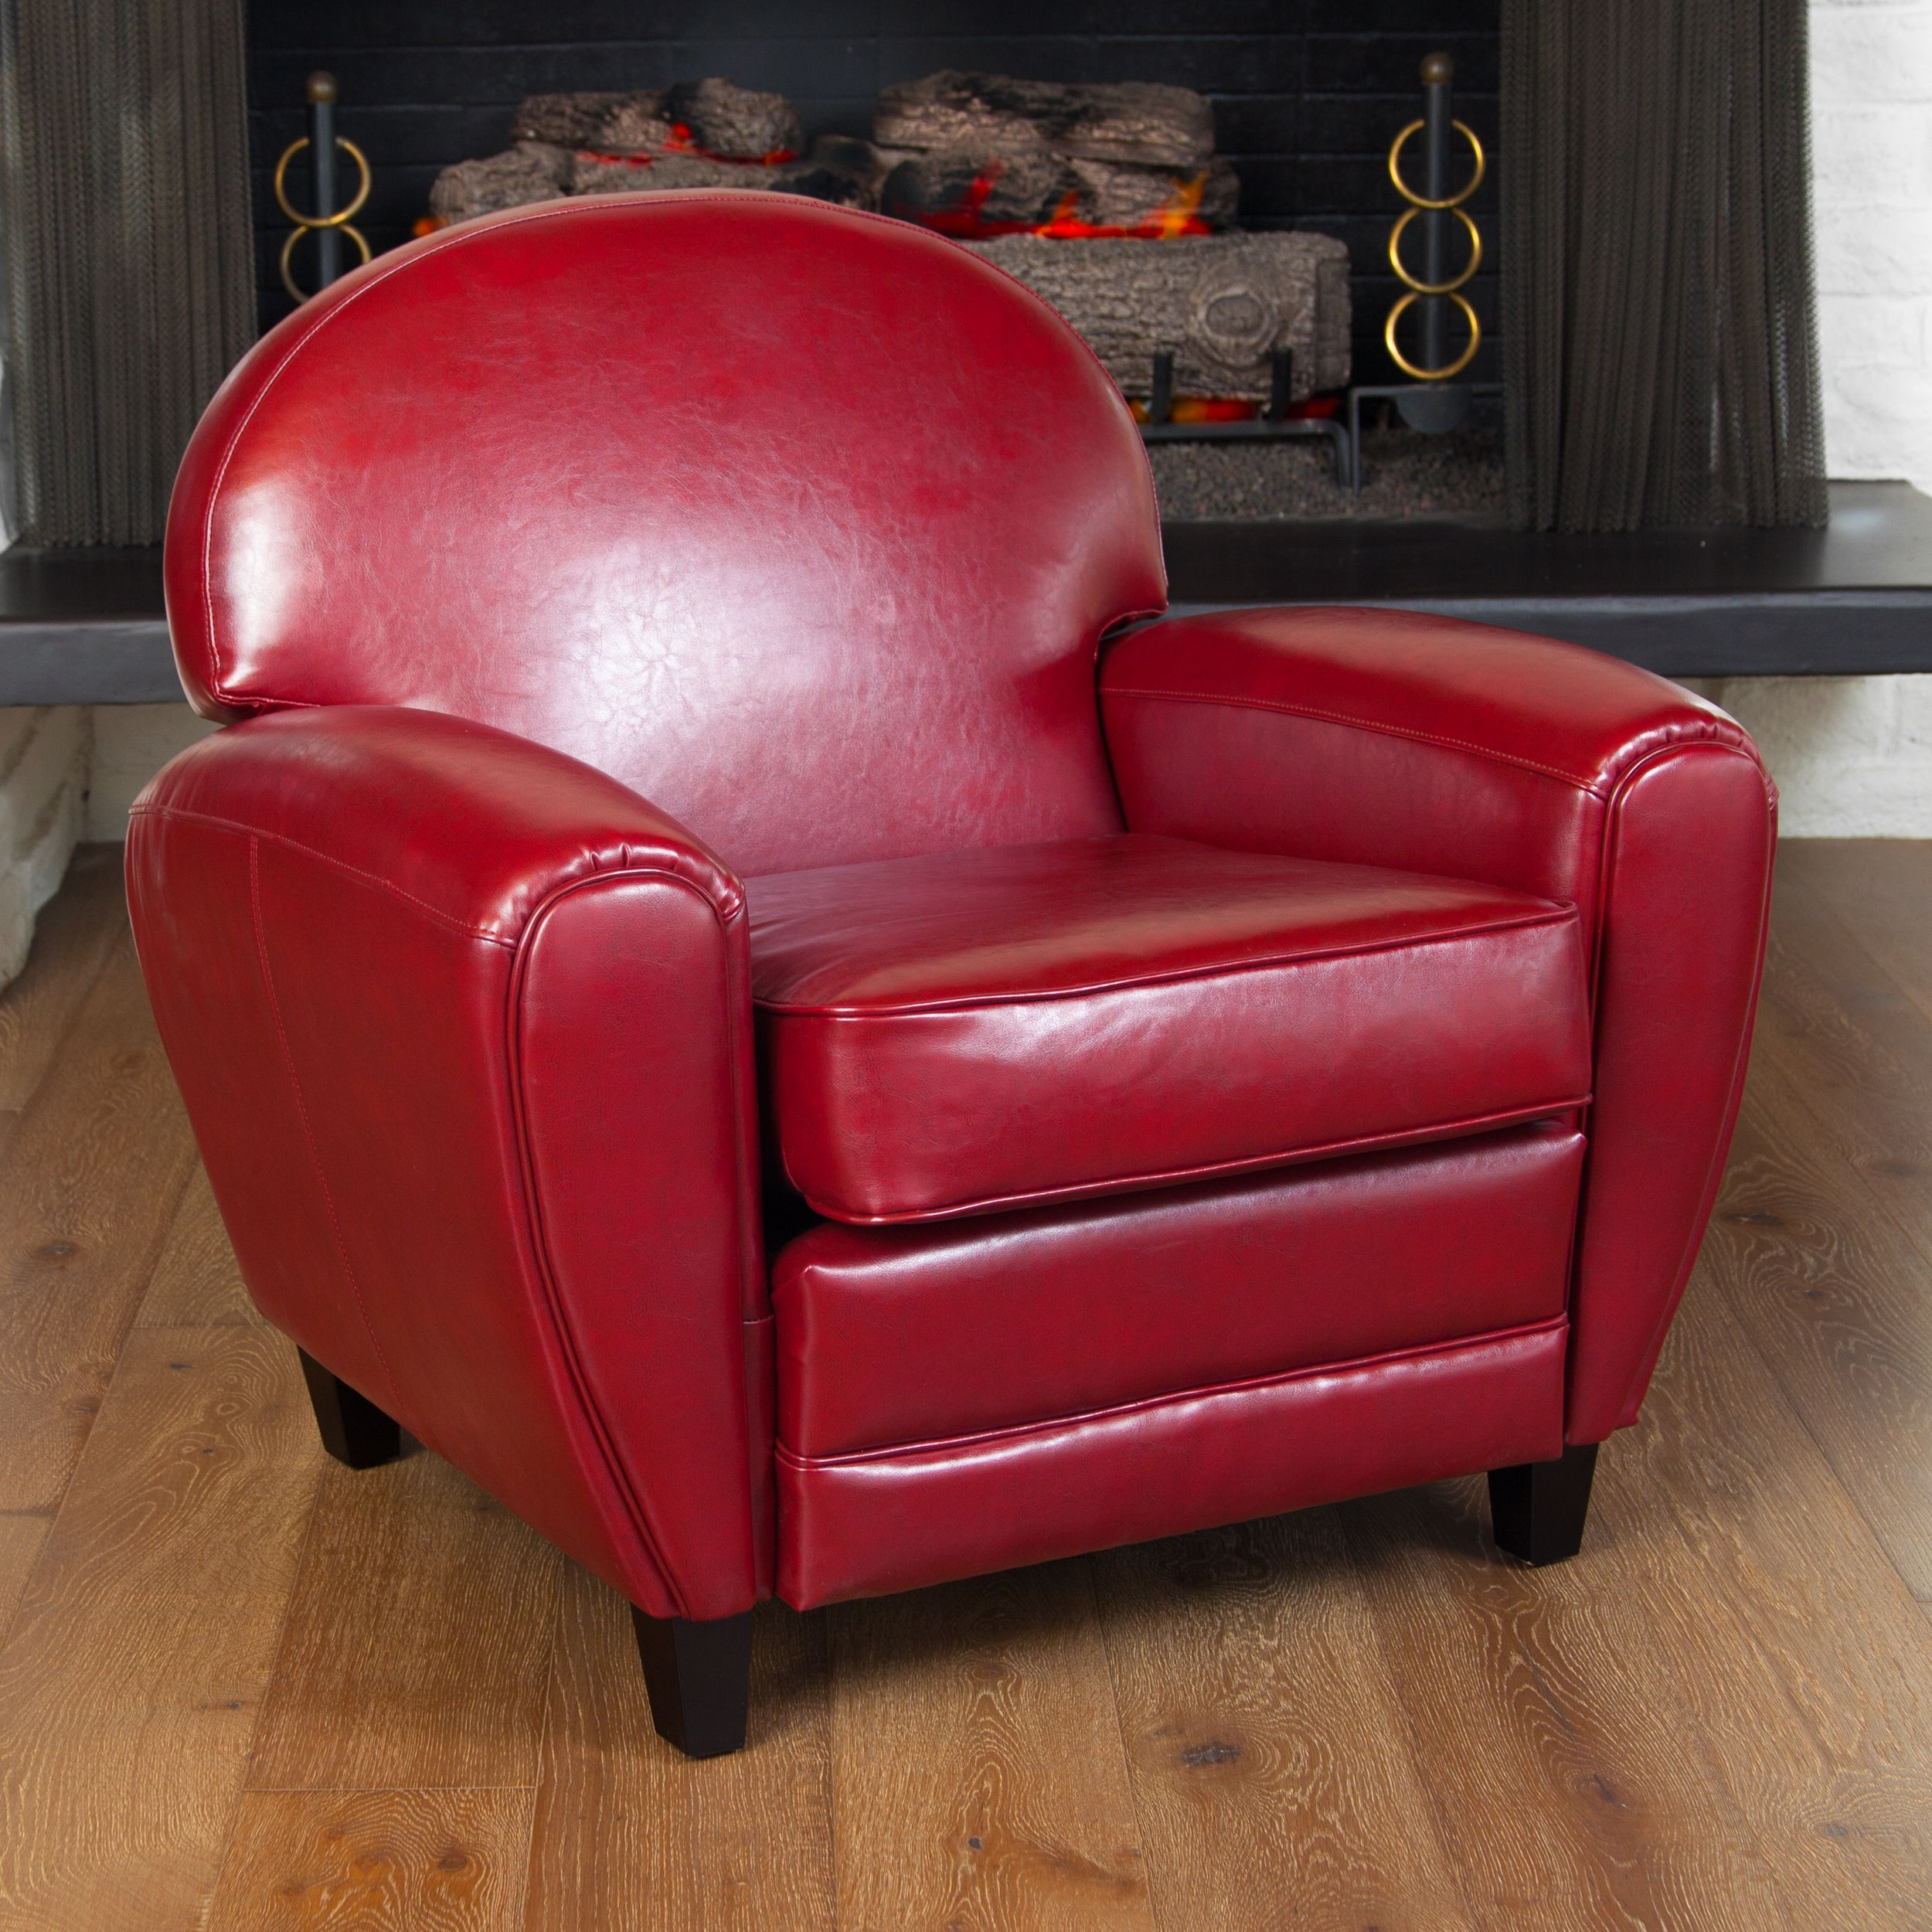 Living Room Chairs For Less & Oversized Ruby Red Leather Club Chair by Christopher Knight Home ...